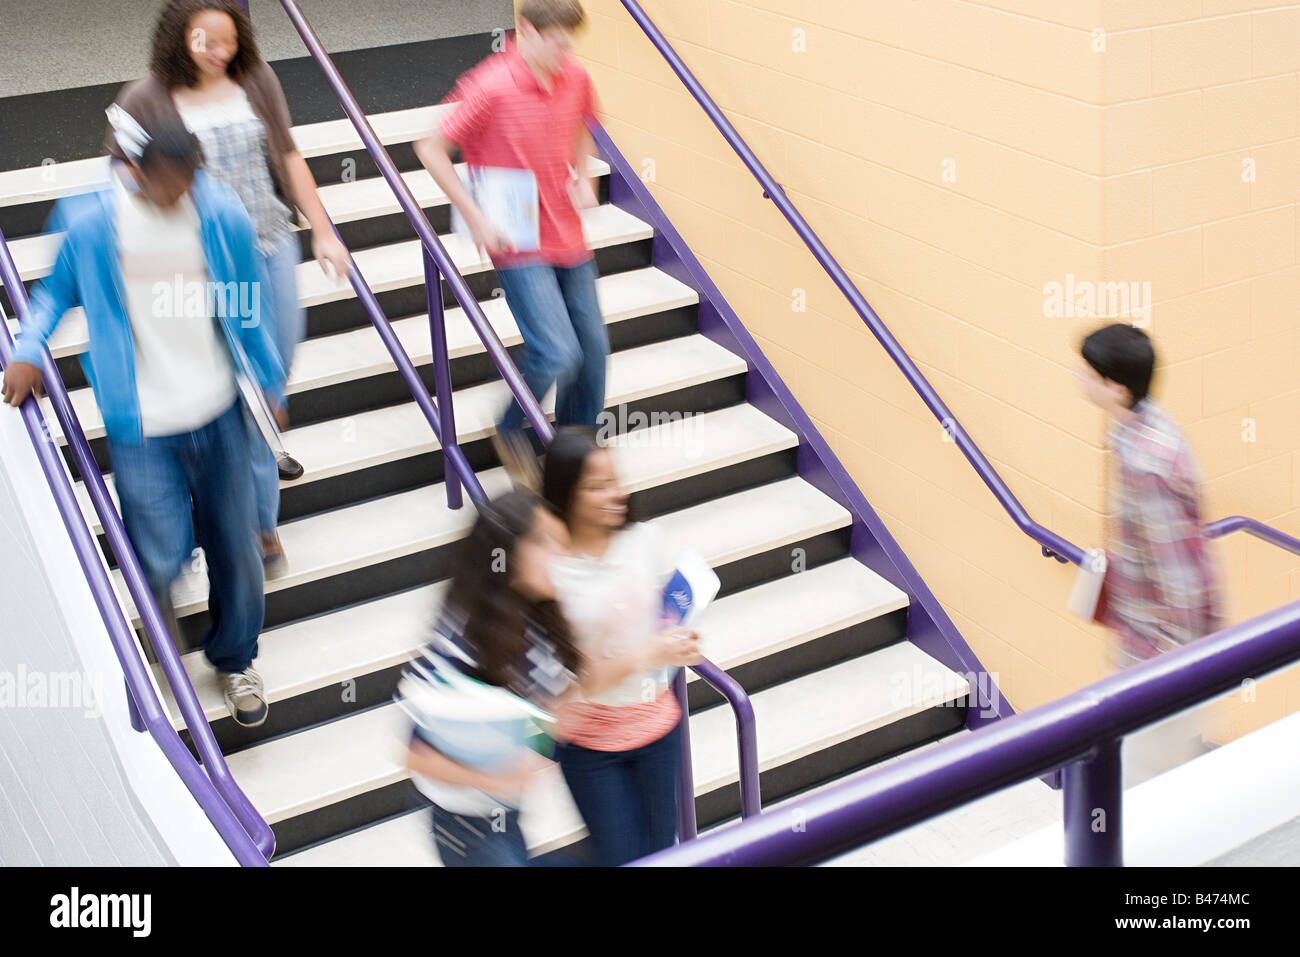 High school students on stairs - Stock Image